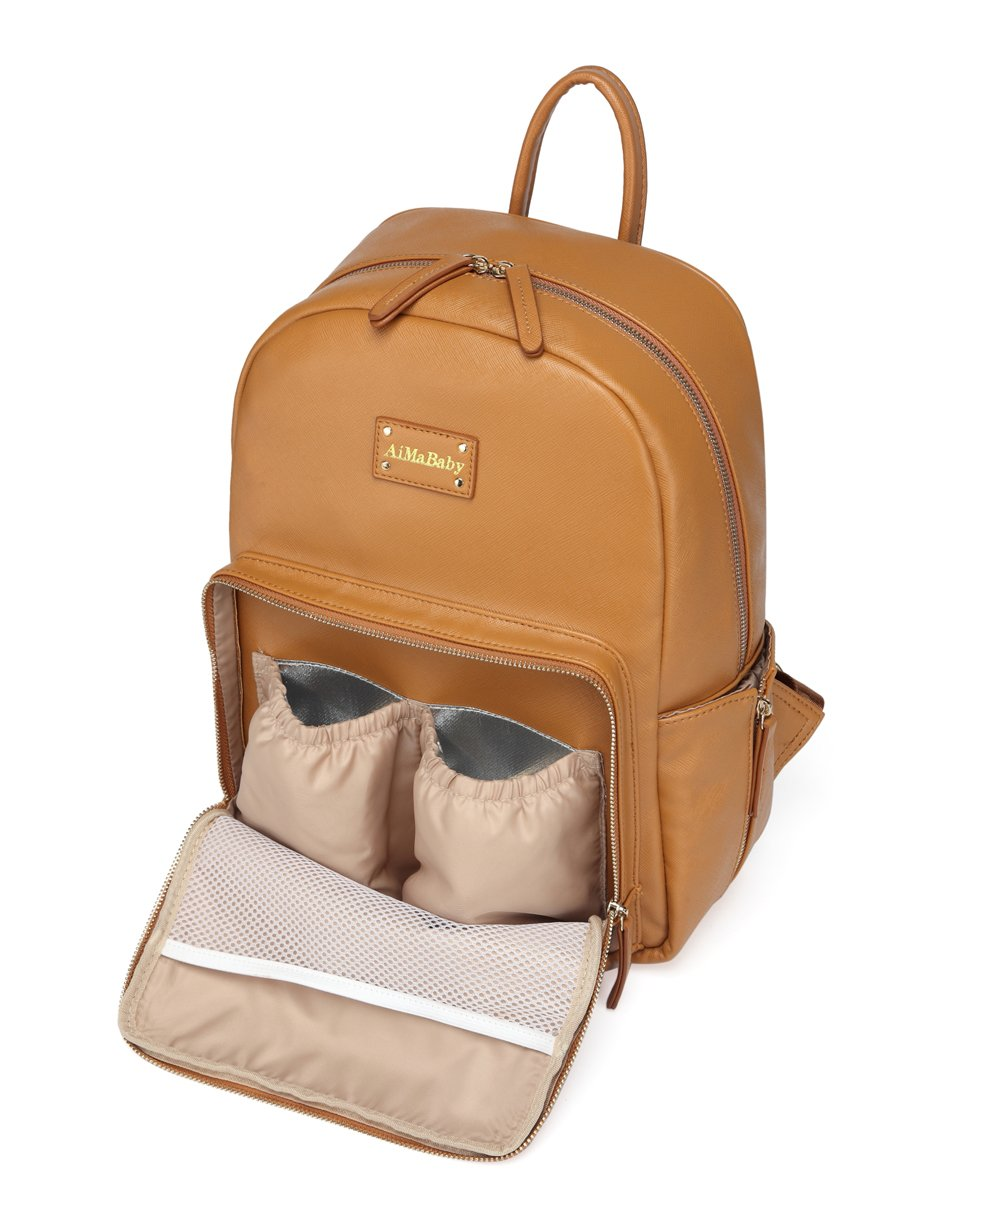 Amazon.com : AMB Fashion PU Leather Practical Multi-Function Backpack Baby Diaper Bag with Changing Pad Light Brown : Baby